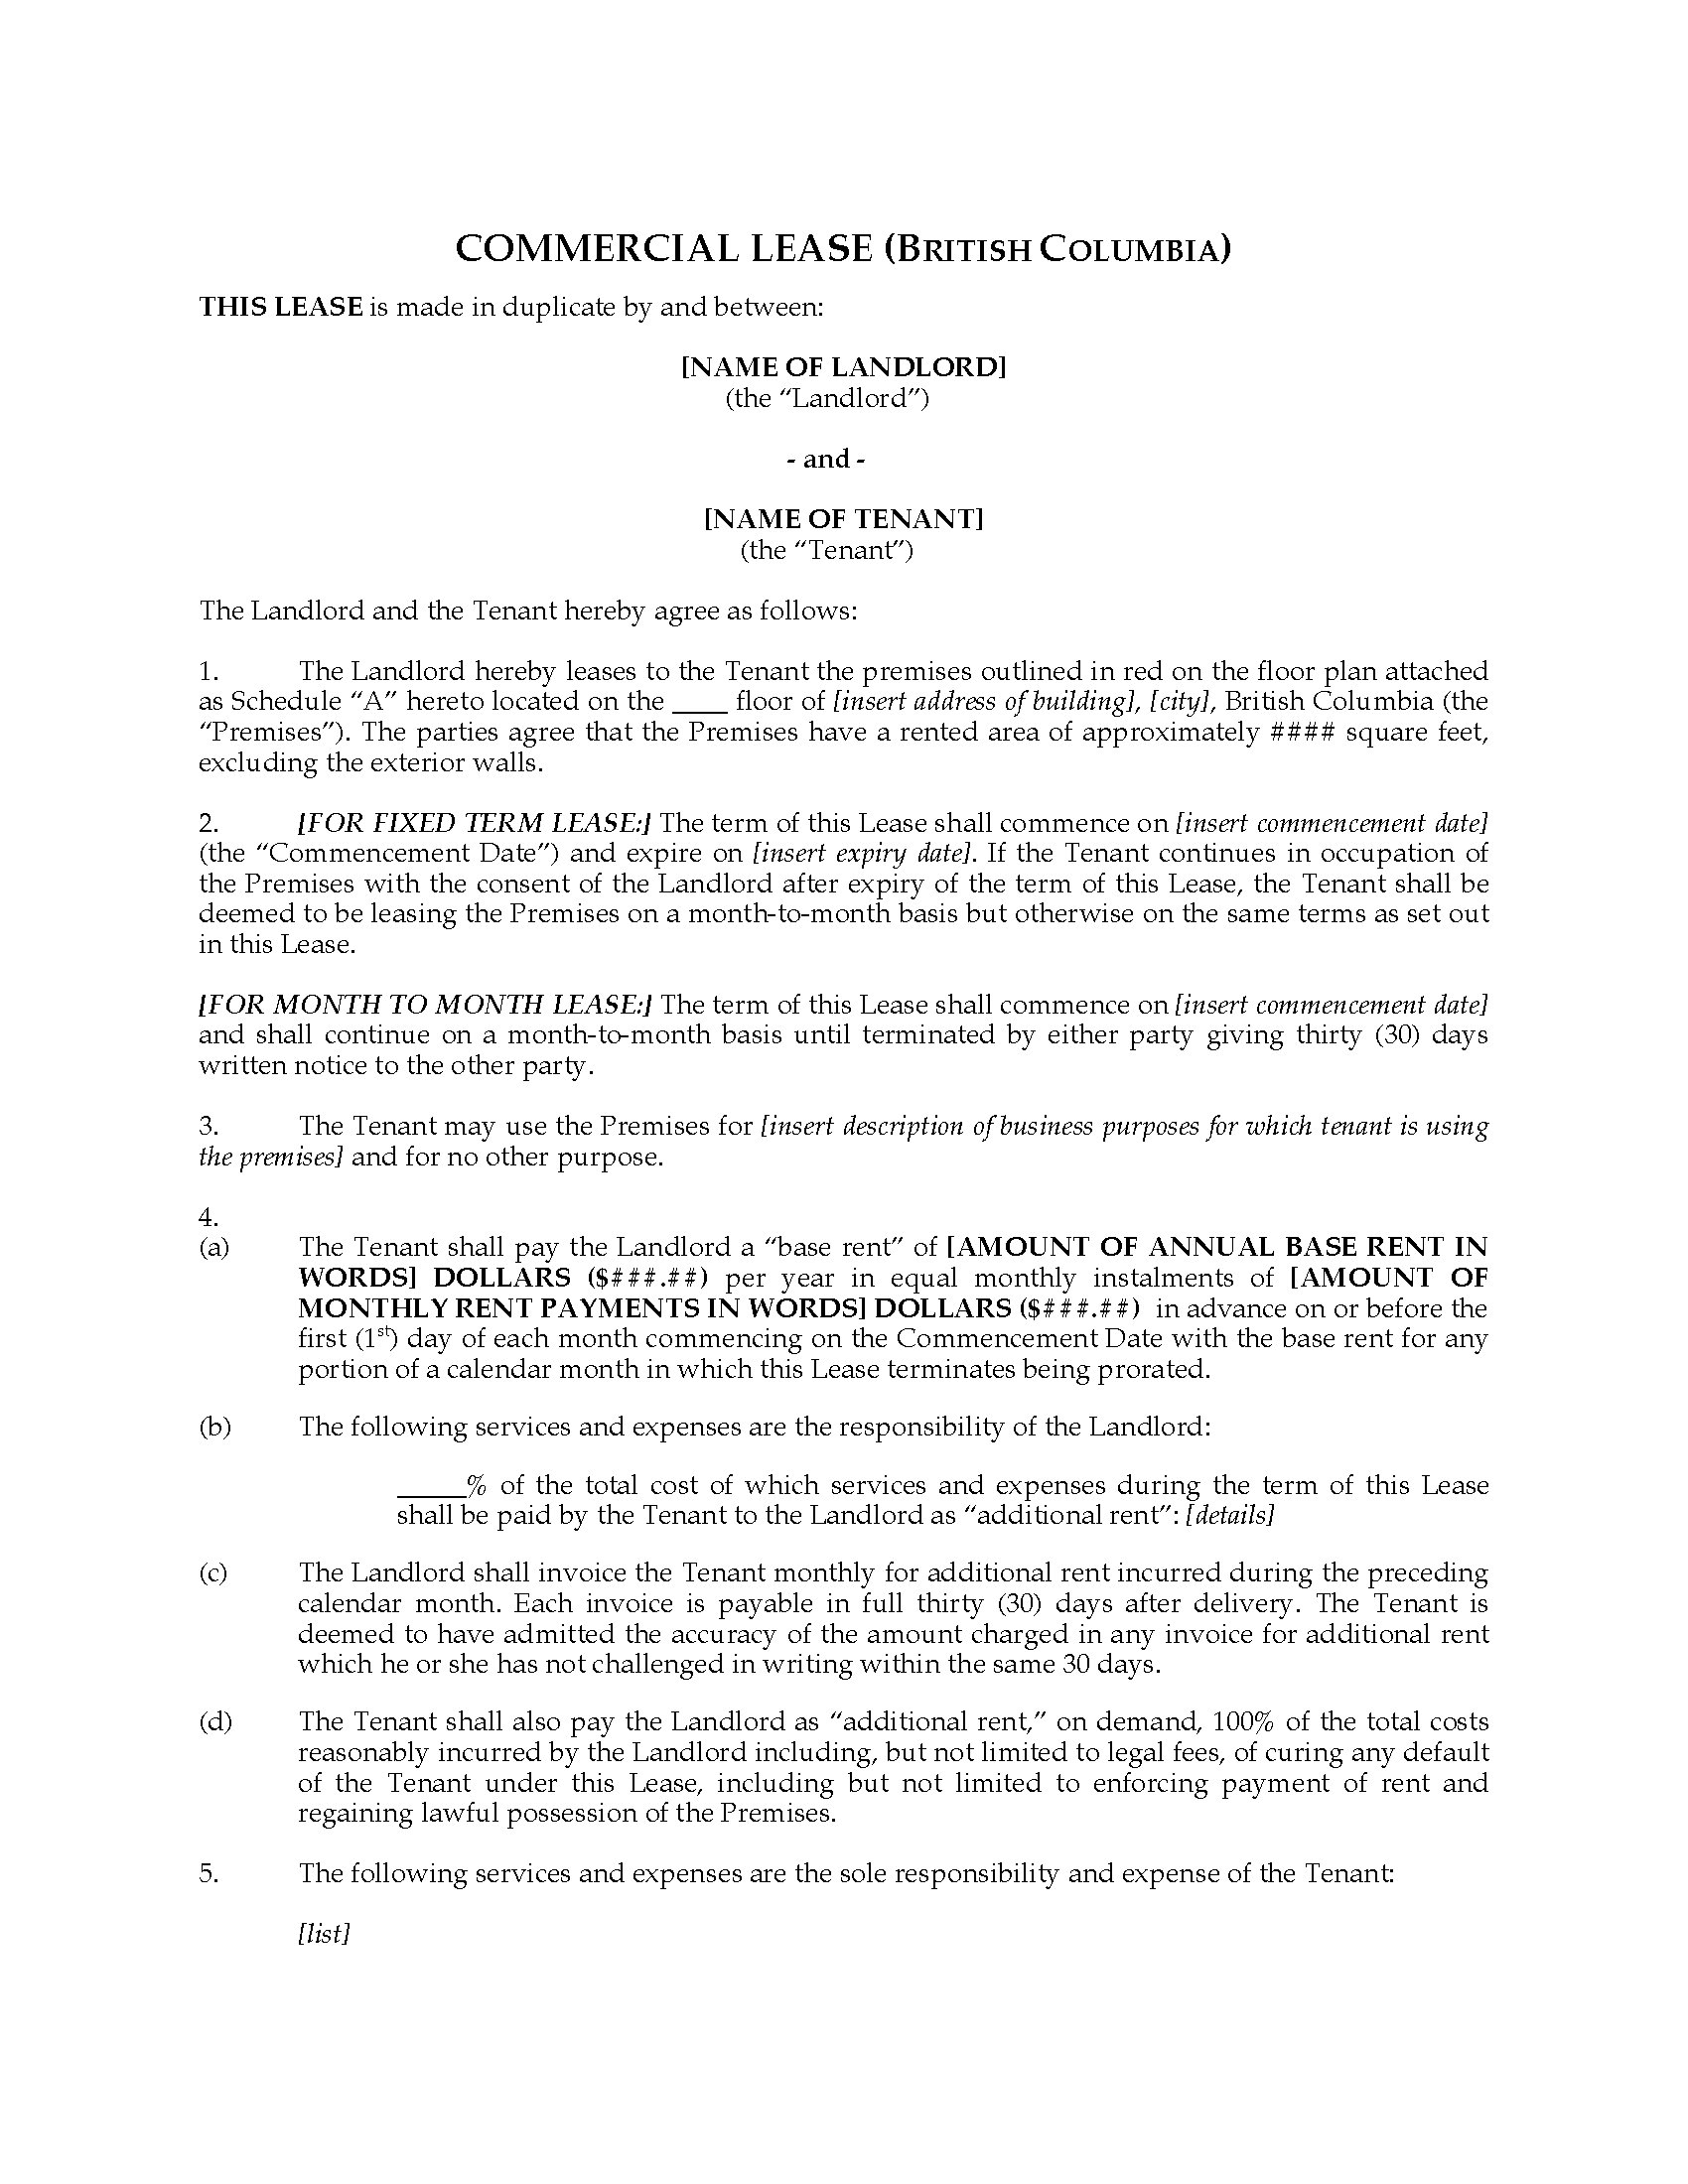 British Columbia Commercial Lease Agreement For Fixed Or Monthly